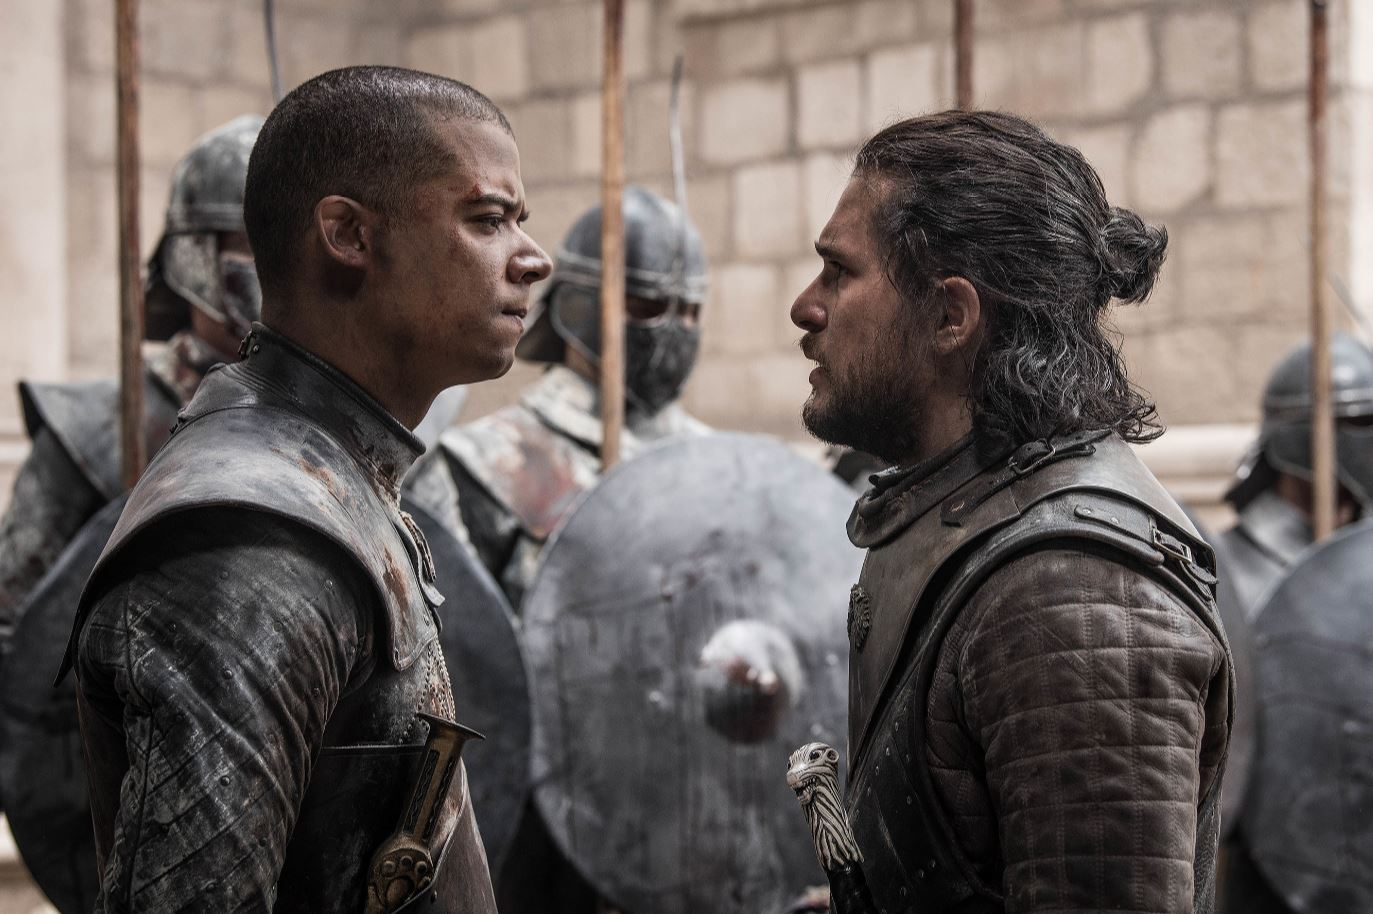 Game Of Thrones season 8: 7 questions we have after The Iron Throne